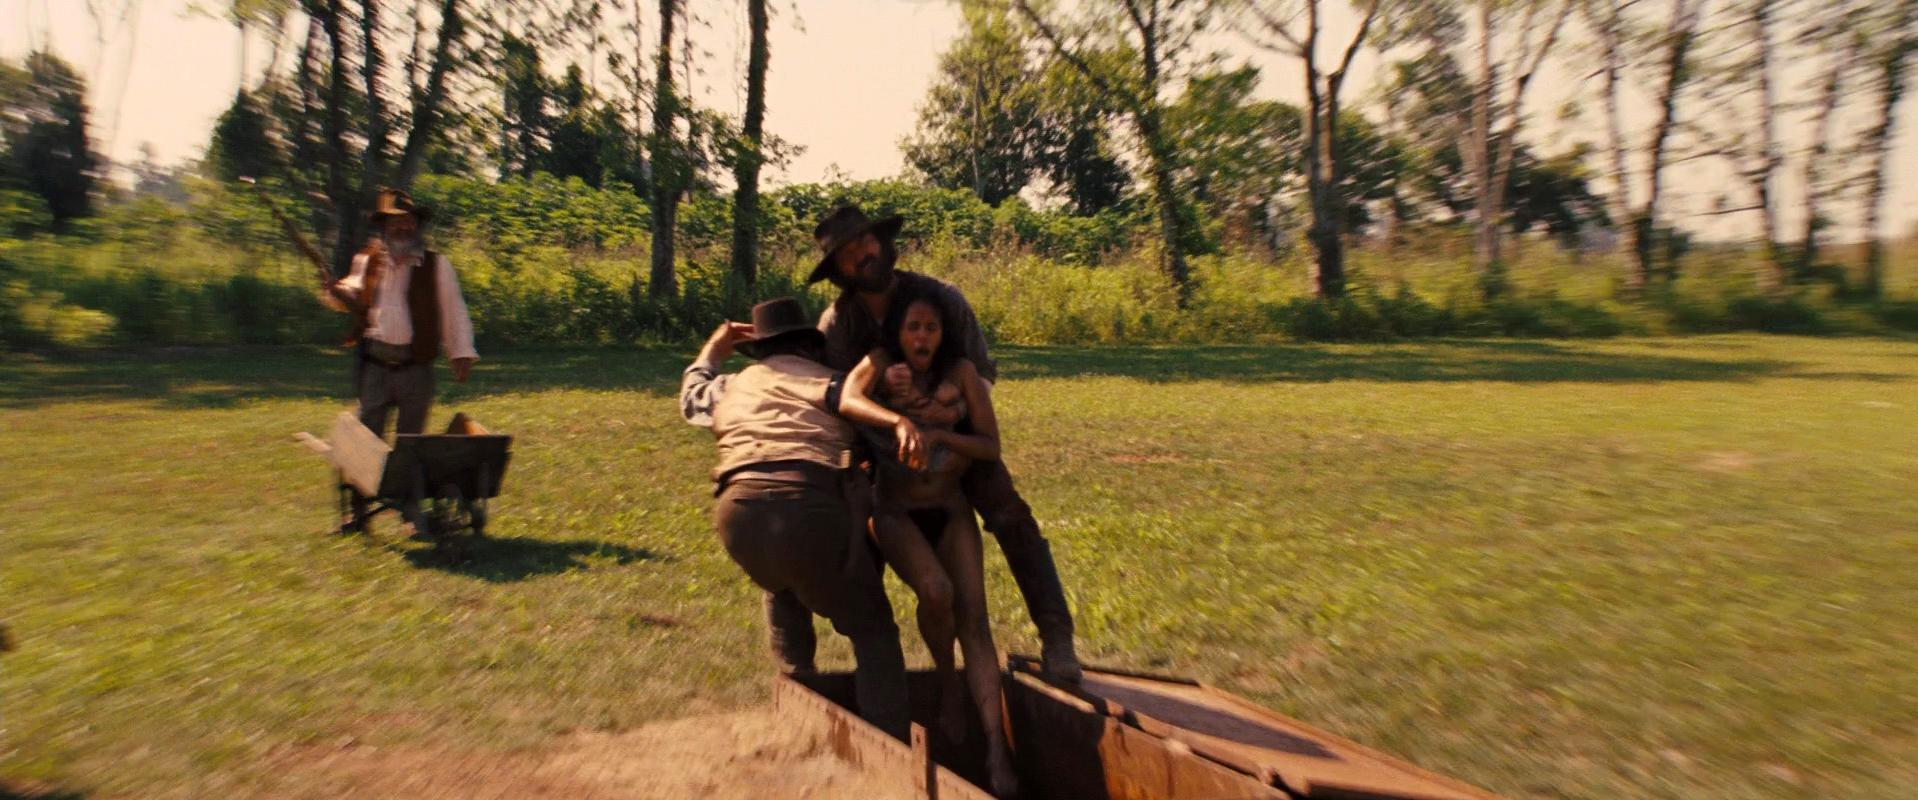 Kerry Washington nude - Django Unchained (2012)